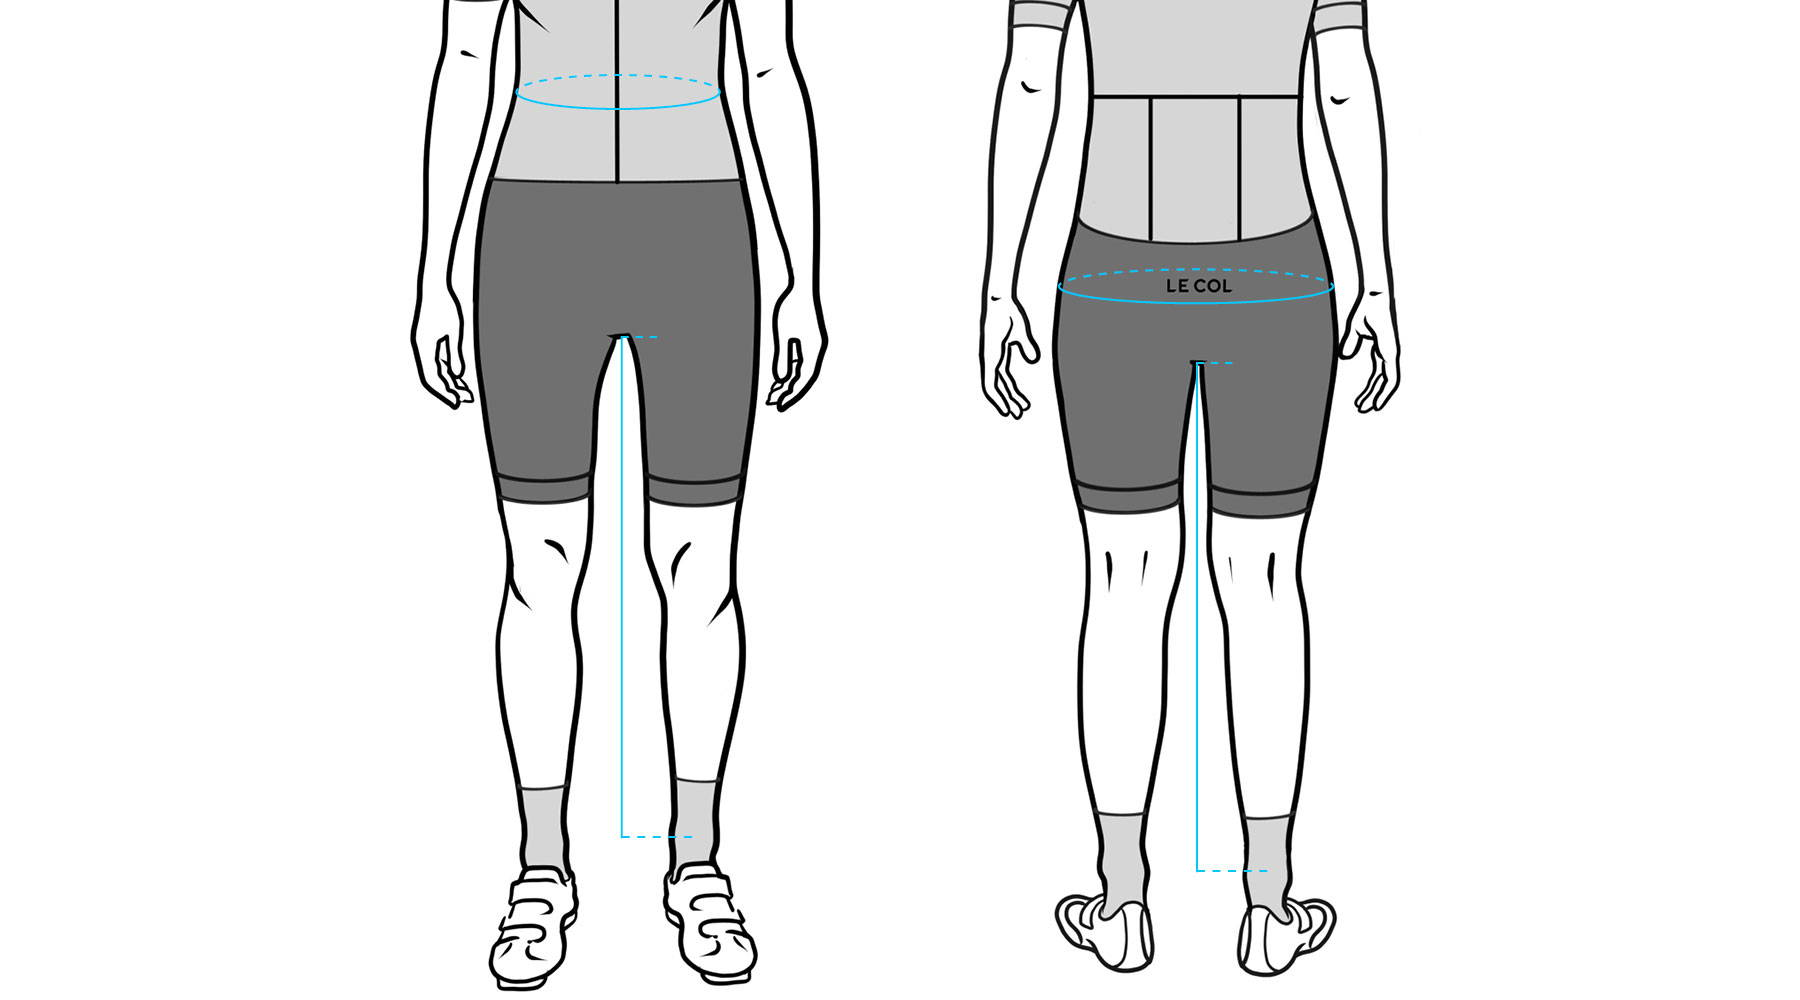 15d6f73b2 The Le Col bib shorts and winter tights are made from high quality stretchy  fabric and should be tight fitting. The sizing is dependent on your waist  size.